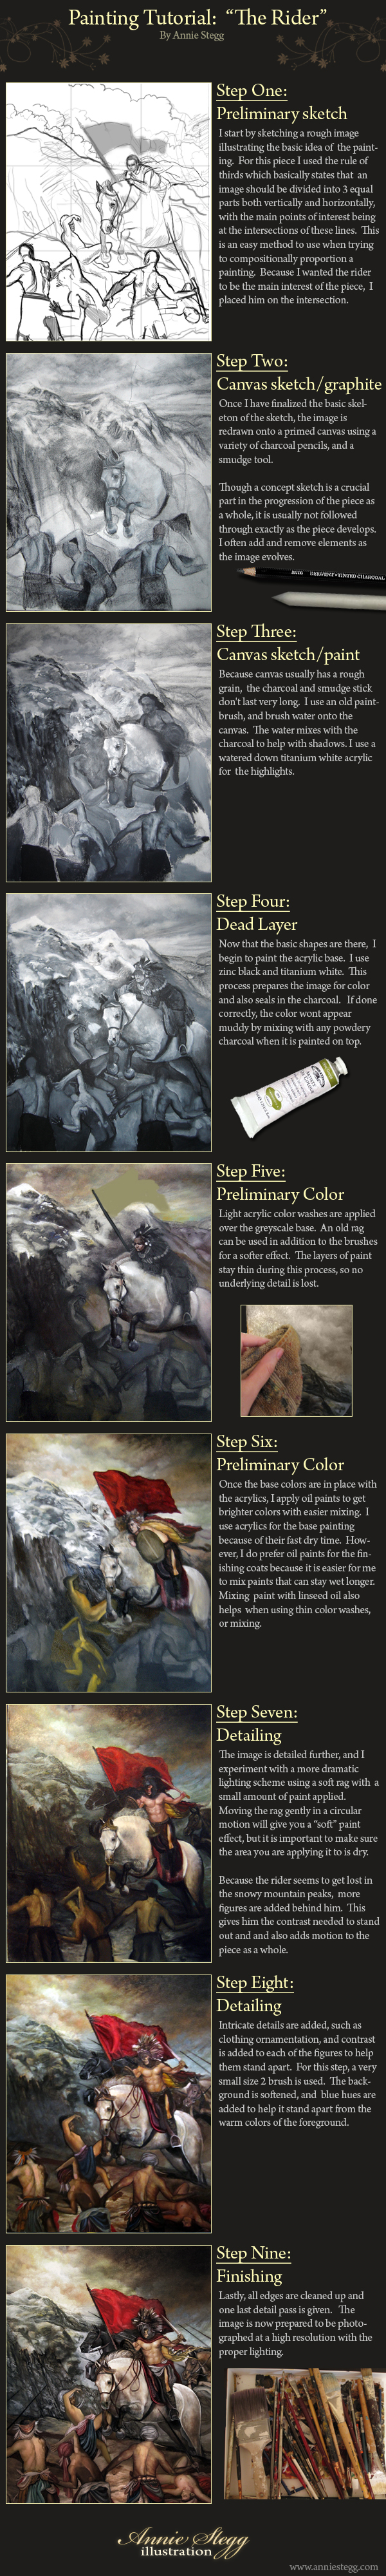 Painting Tutorial: The Rider by PinkParasol